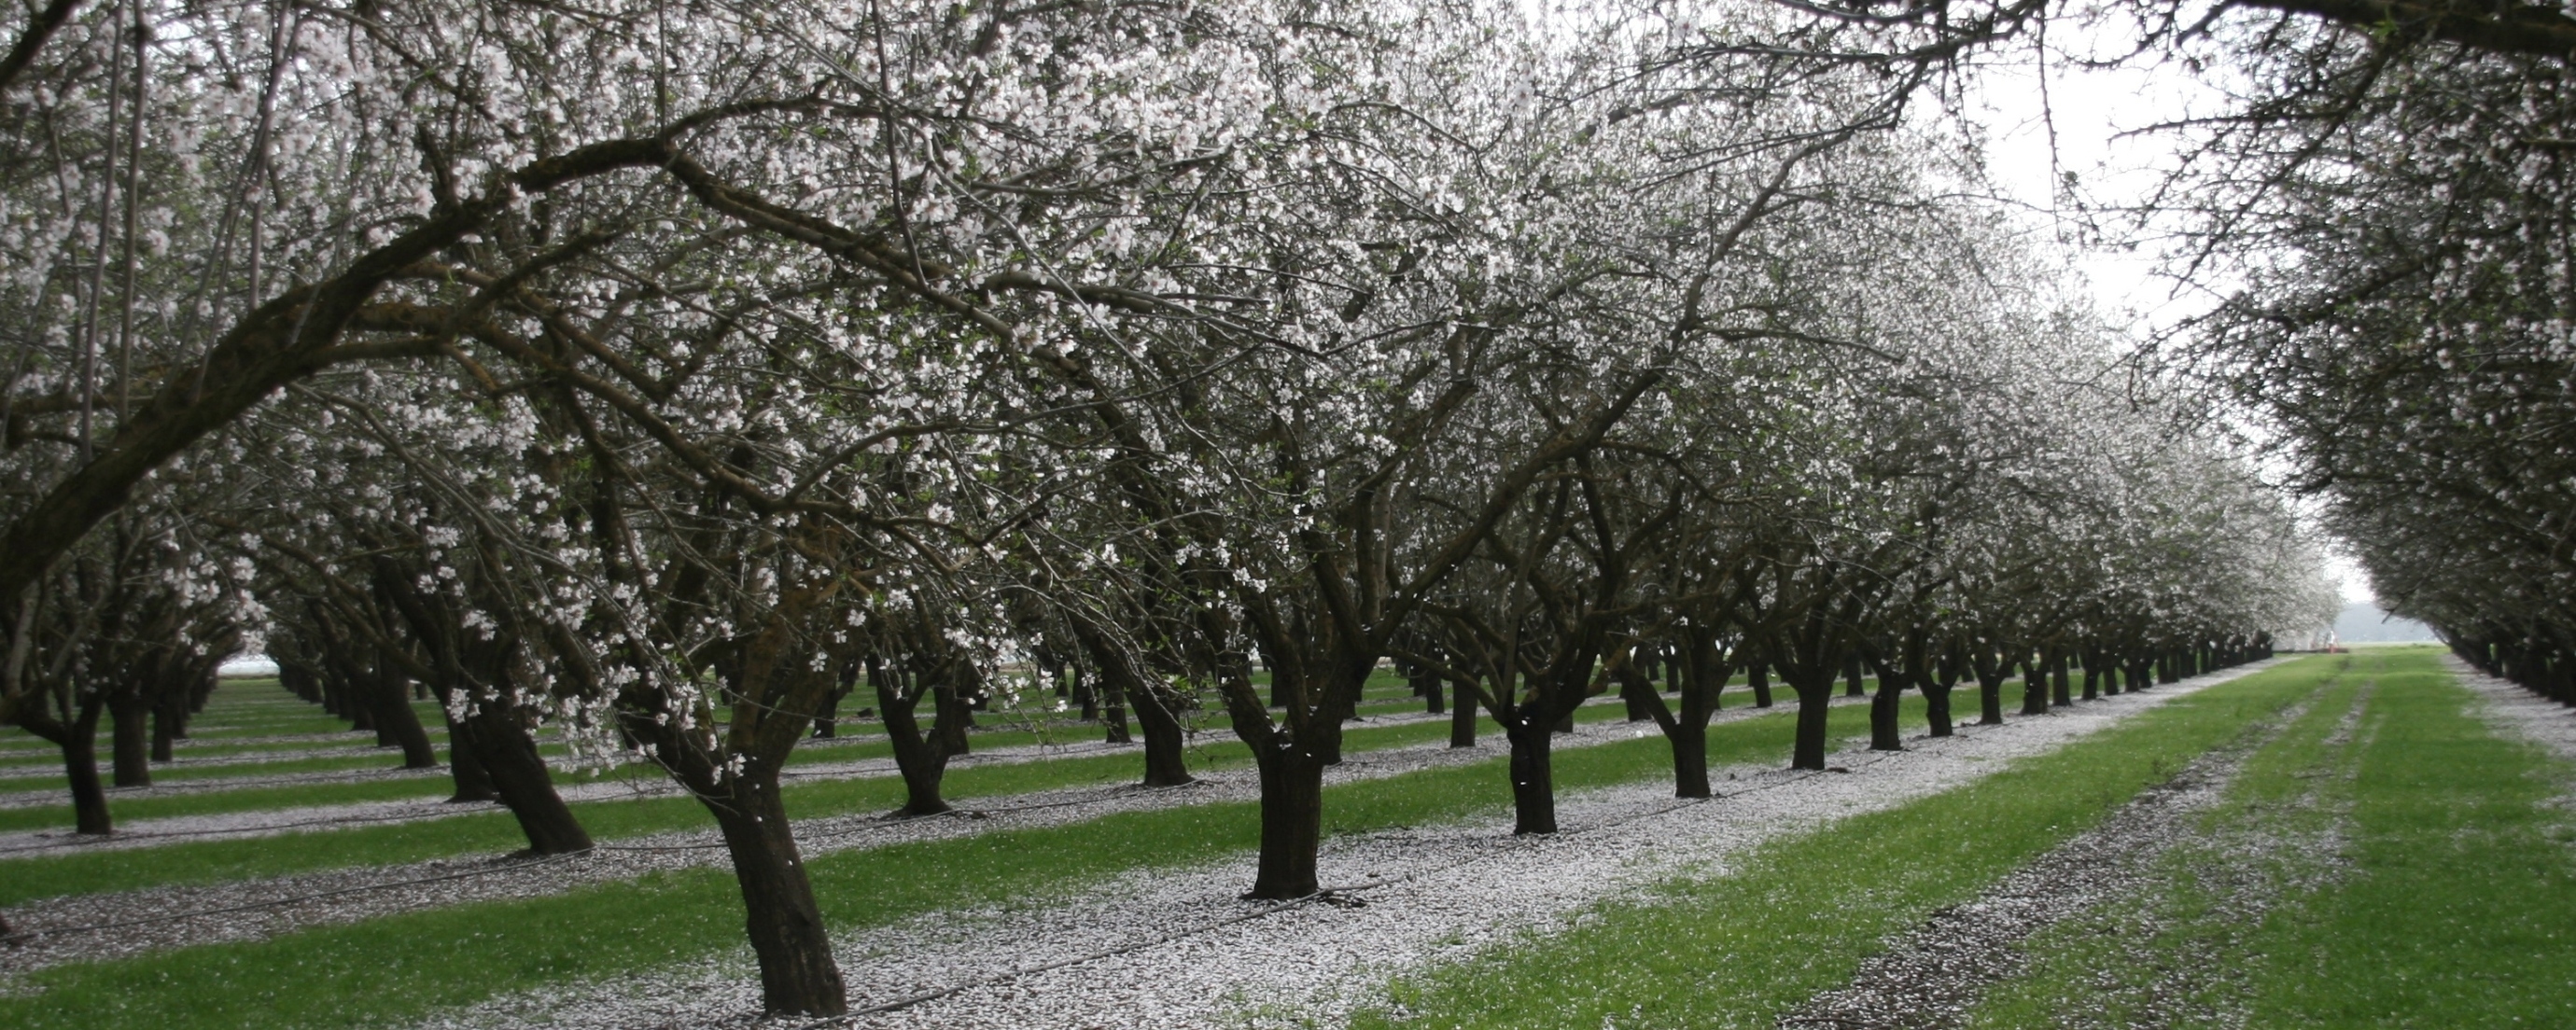 Family - owned almond farm